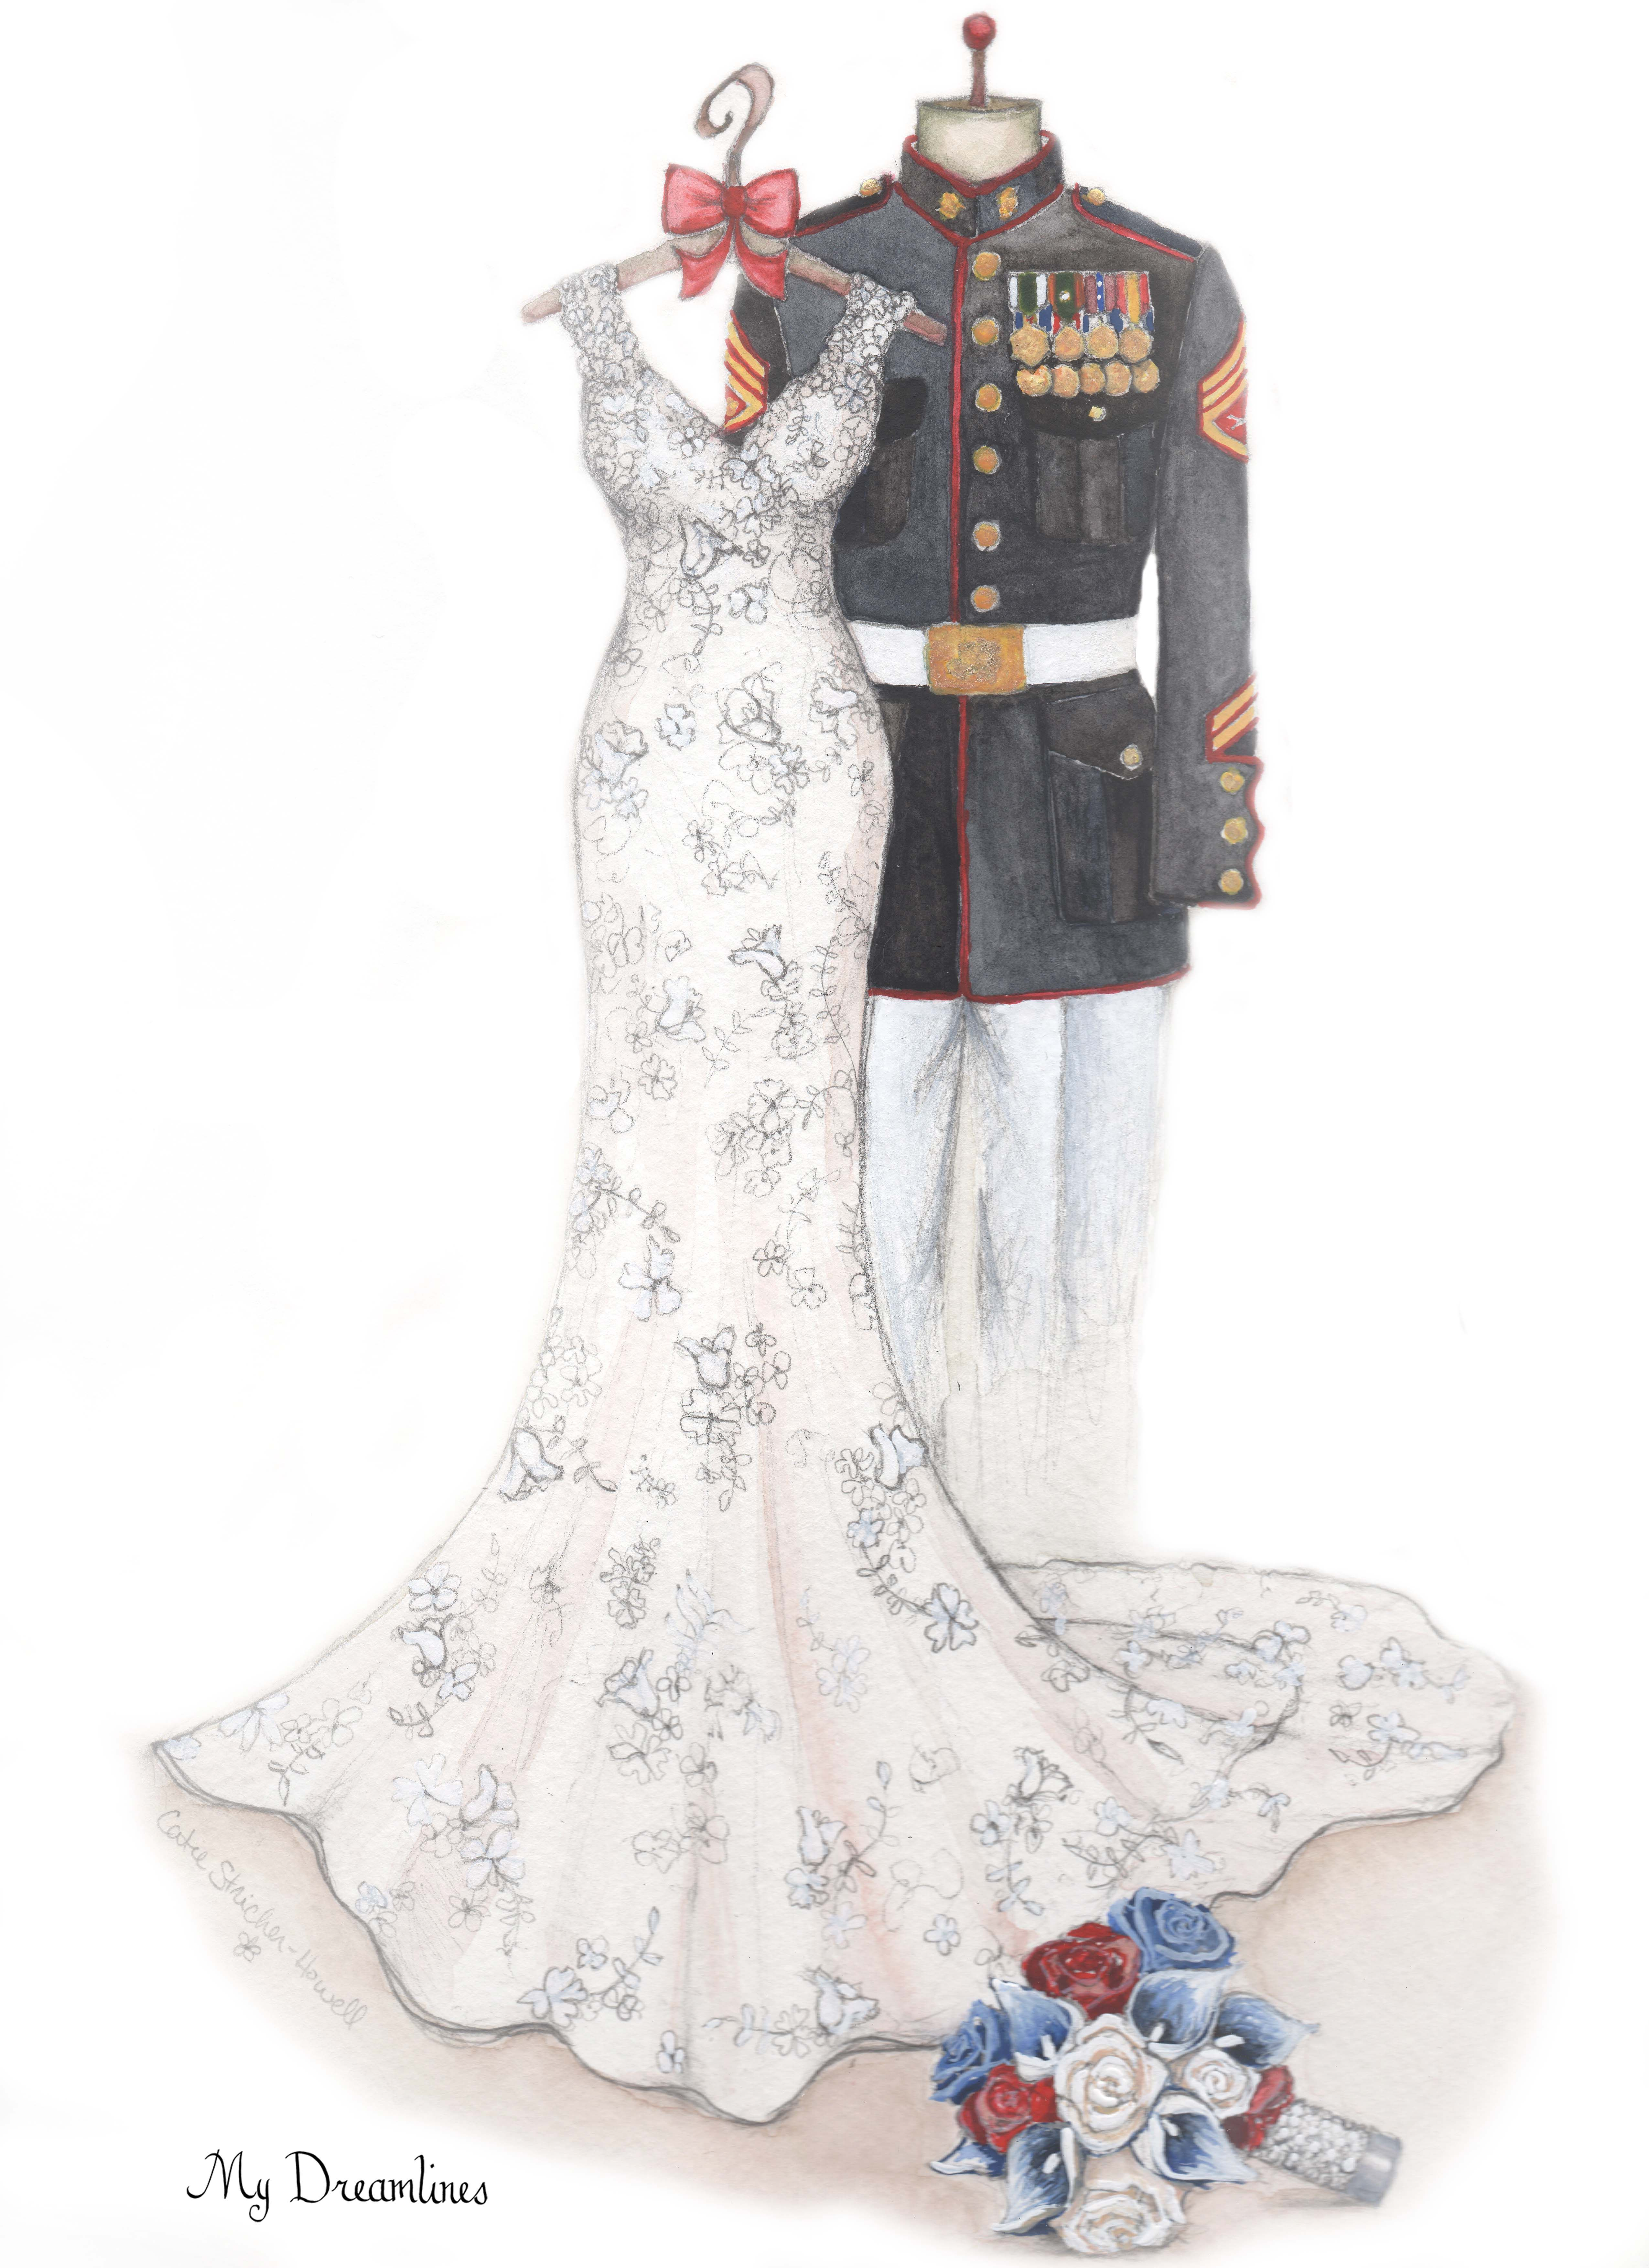 Military Uniform And Wedding Dress Sketch Given As Wedding Gifts Or